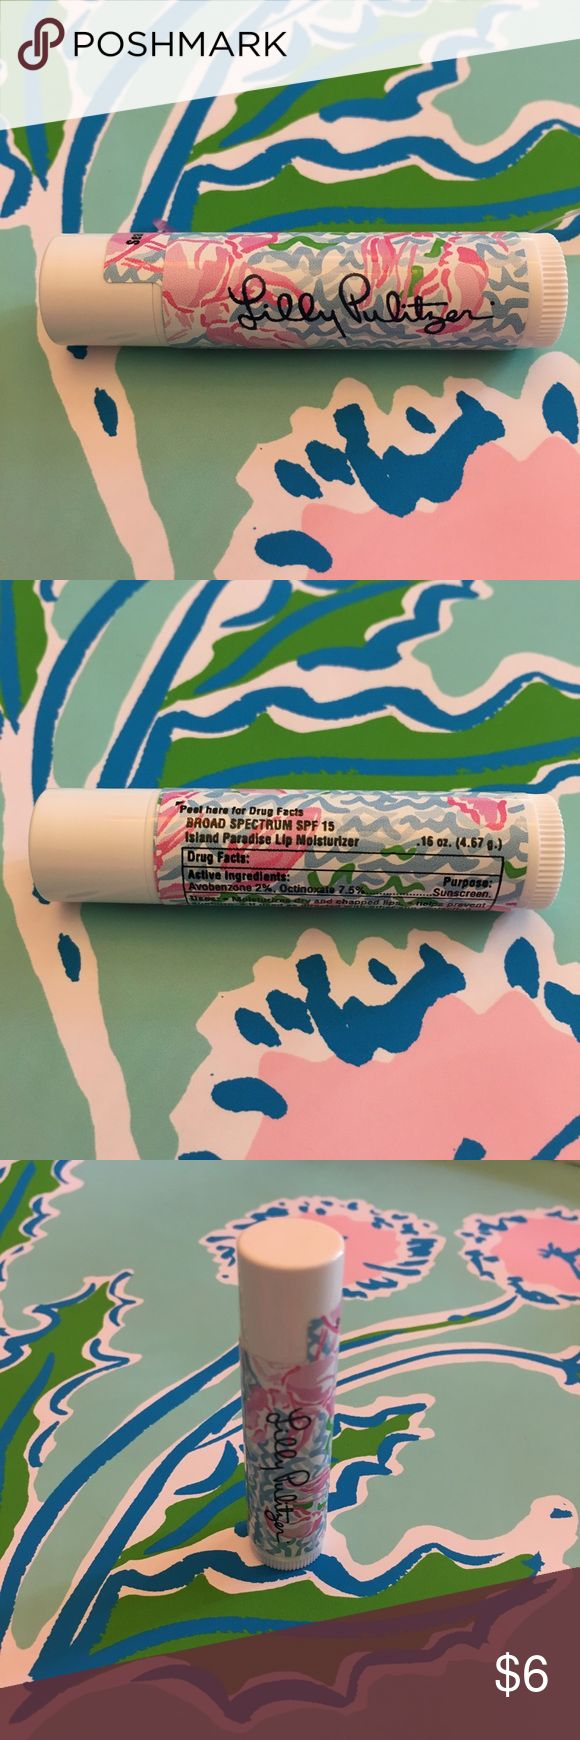 Lilly Pulitzer Chapstick Brand new Lilly printed chapstick! Lilly Pulitzer Makeup